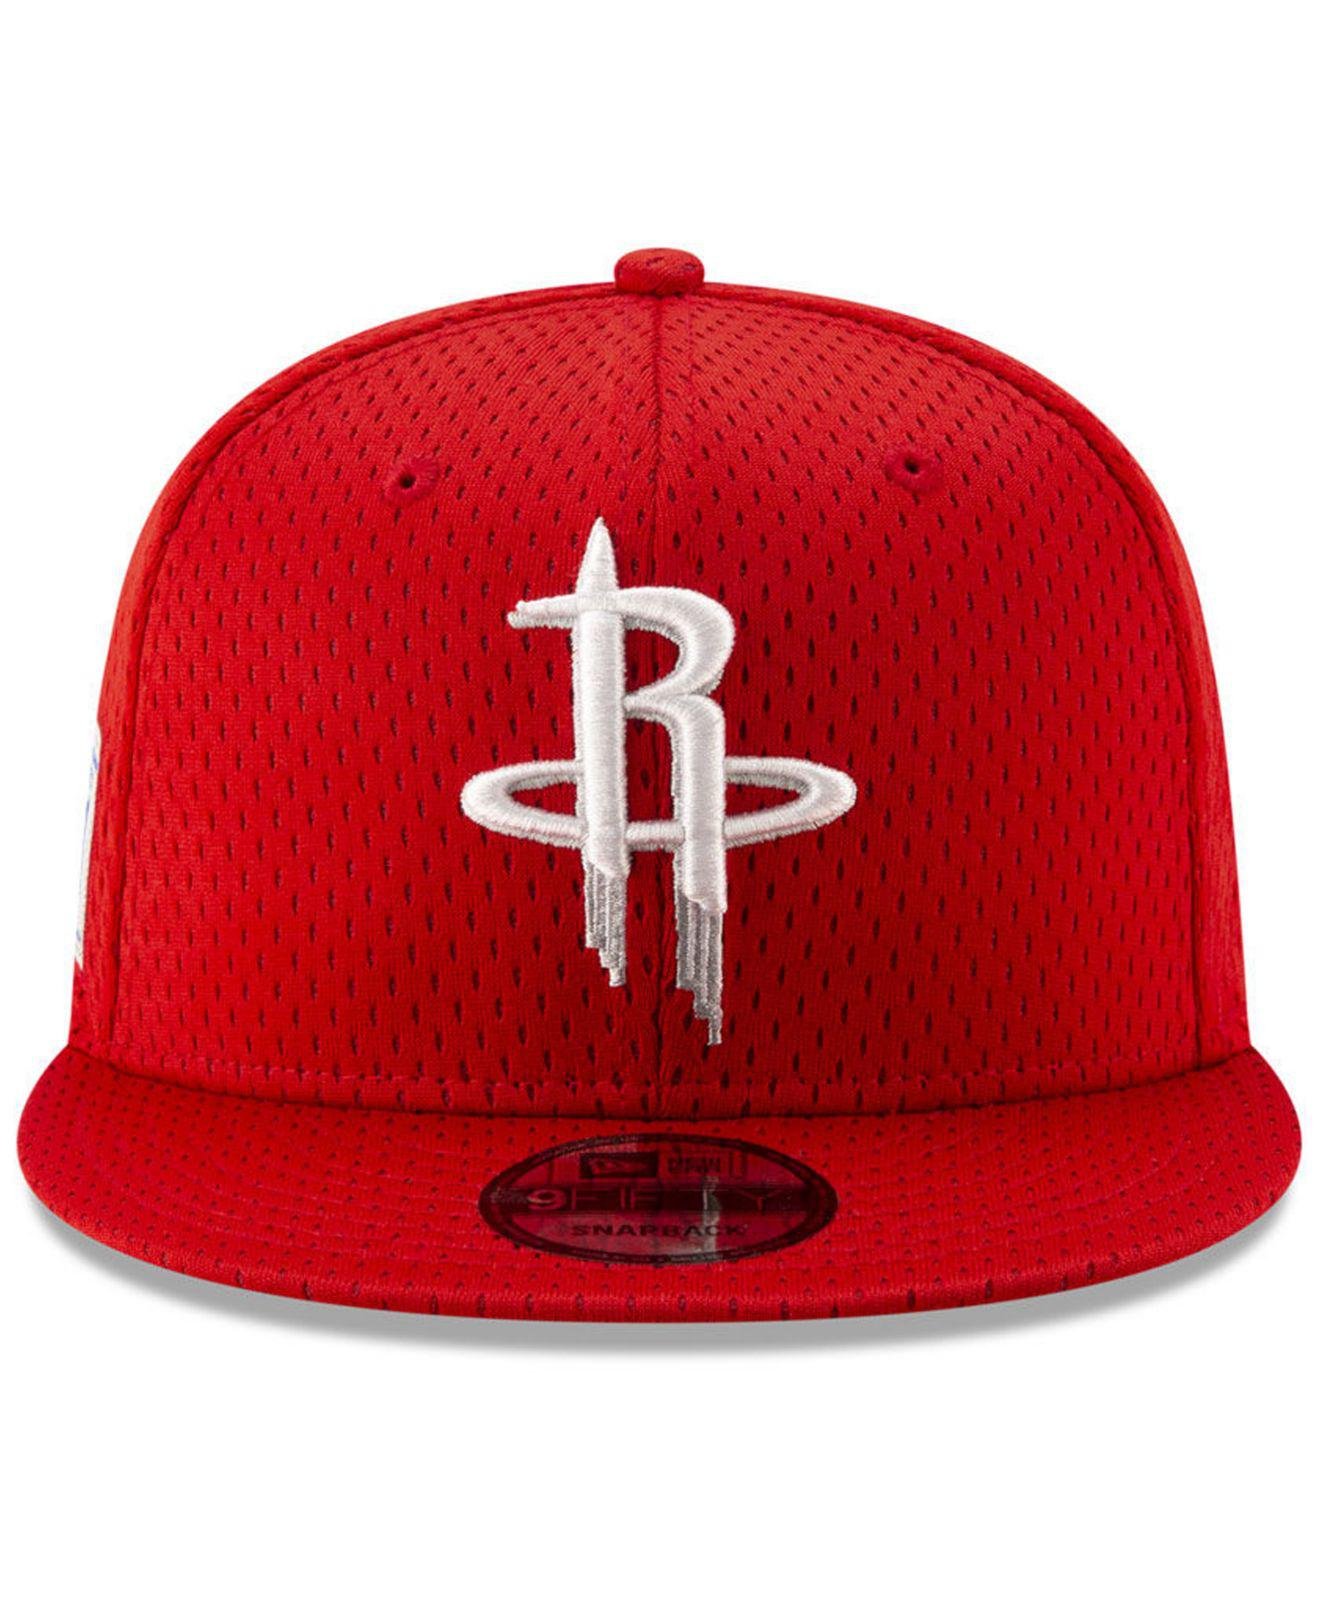 online store 9bc76 0aeb9 ... sale lyst ktz houston rockets jock tag 9fifty snapback cap in red for  men 5d566 11426